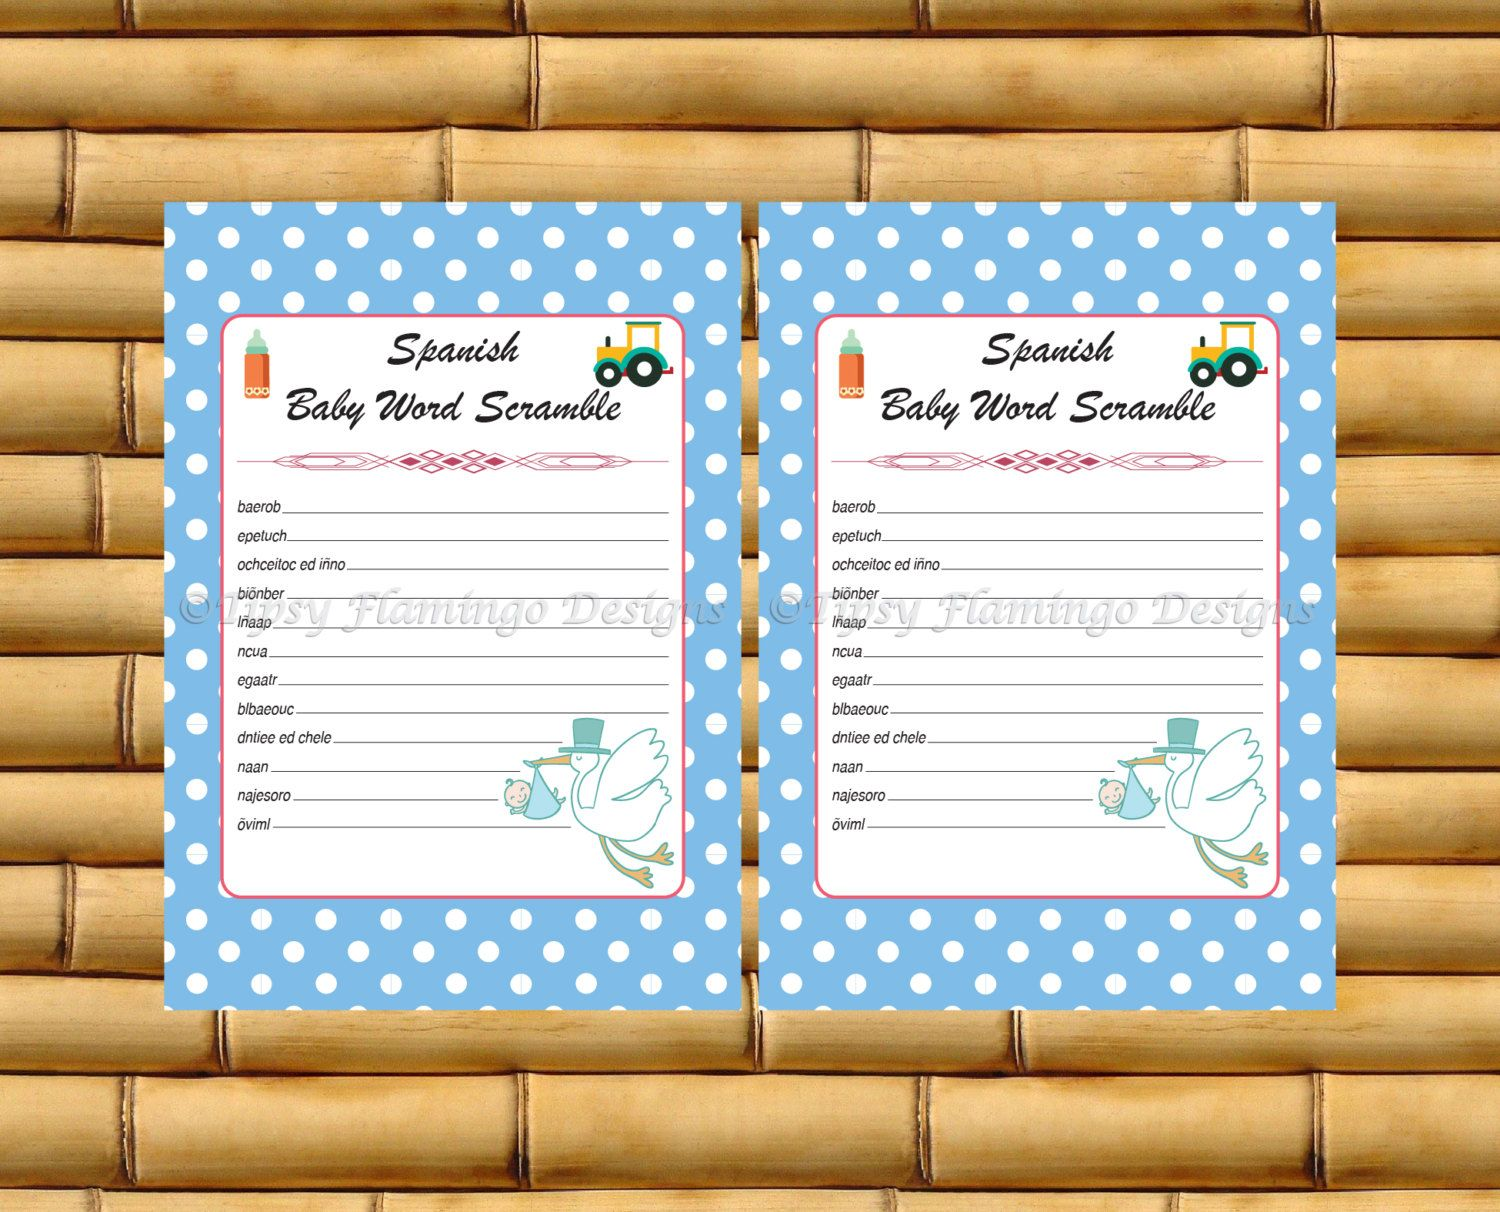 UNIQUE   Baby Shower   Spanish Word Scramble   Printable Baby Shower Game    Blue And